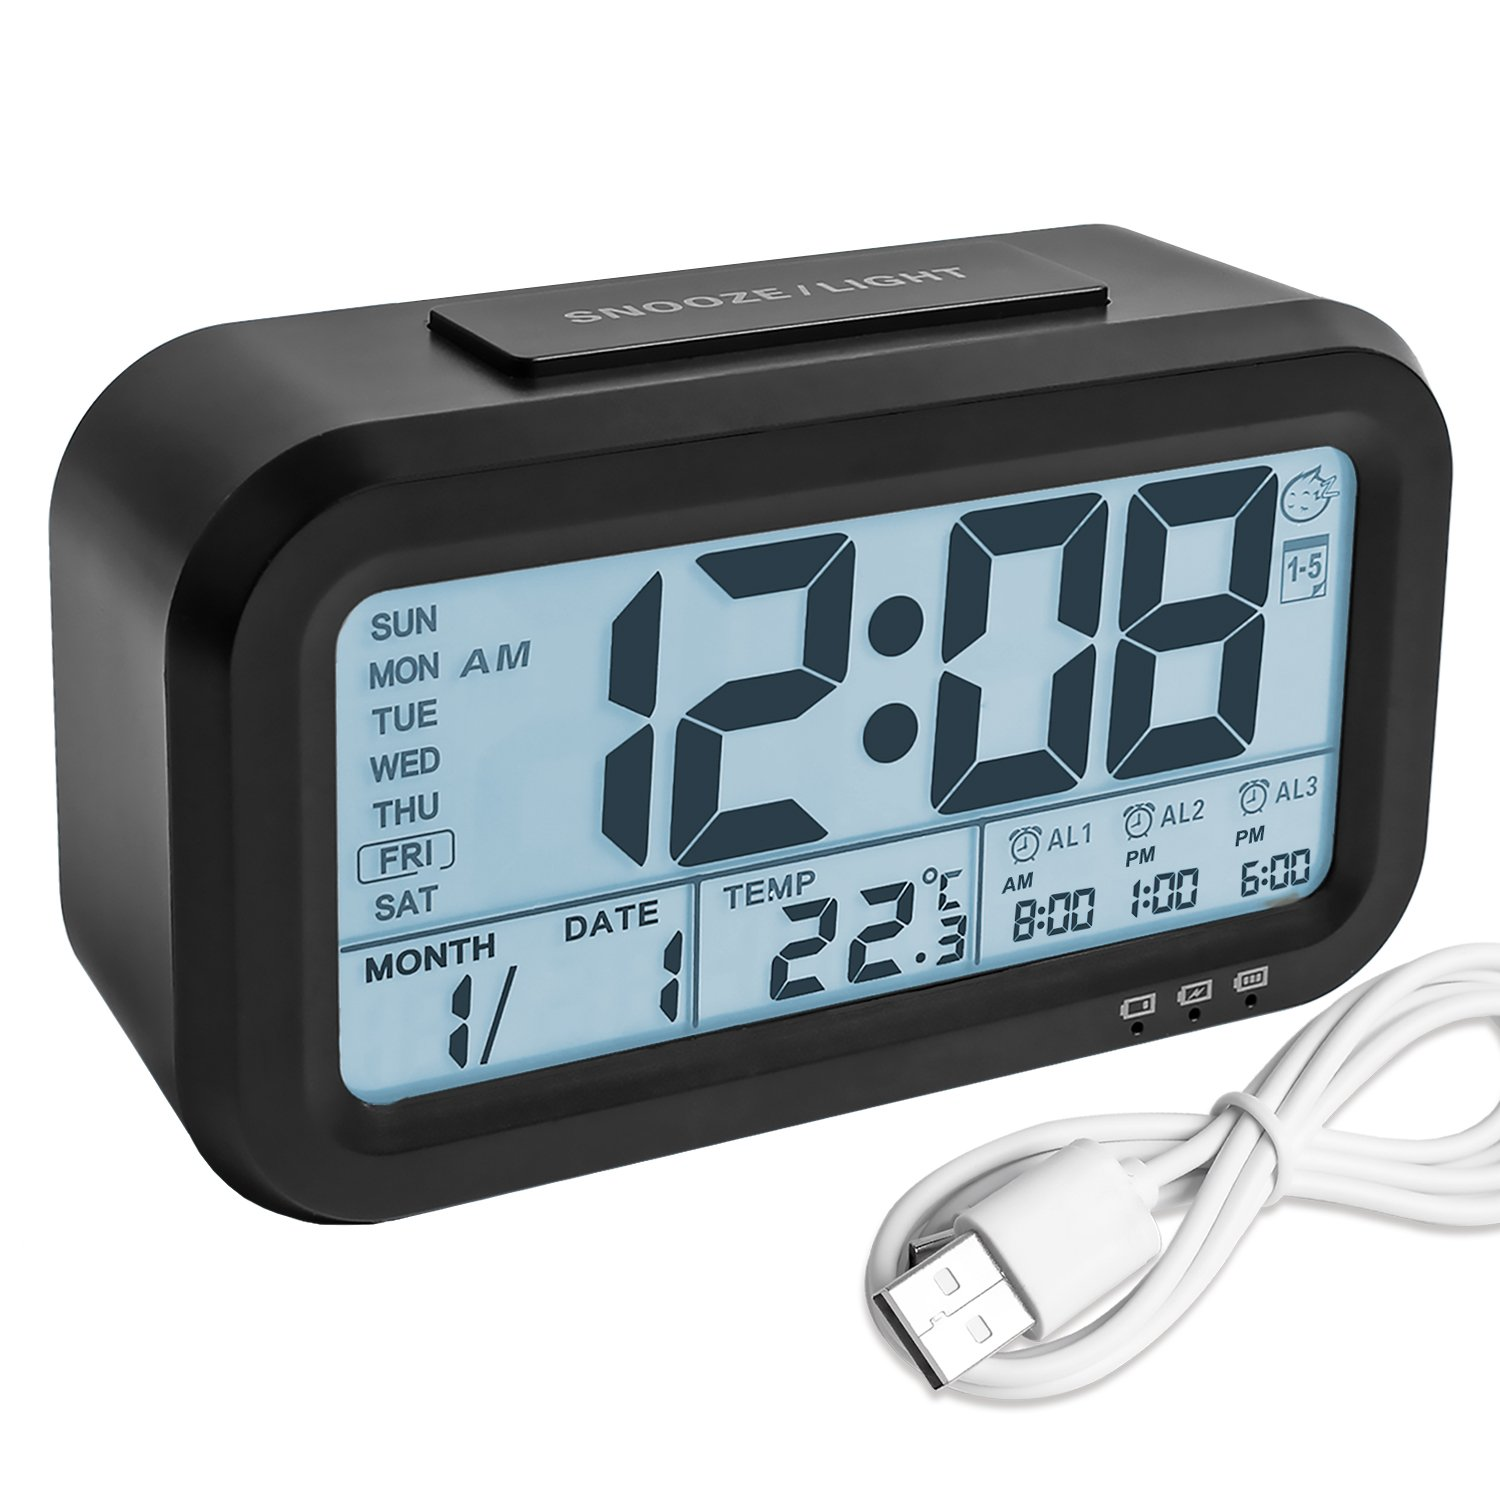 Digital Alarm Clock, Backlight LCD Morning Clock Travel Alarm Clock with 3 Alarms Thermometer Calendar Large Display Smart Nightlight Soft Light Snooze, Battery Operated with USB Charger (Black) YouCoulee CC-Alarm Clock-001